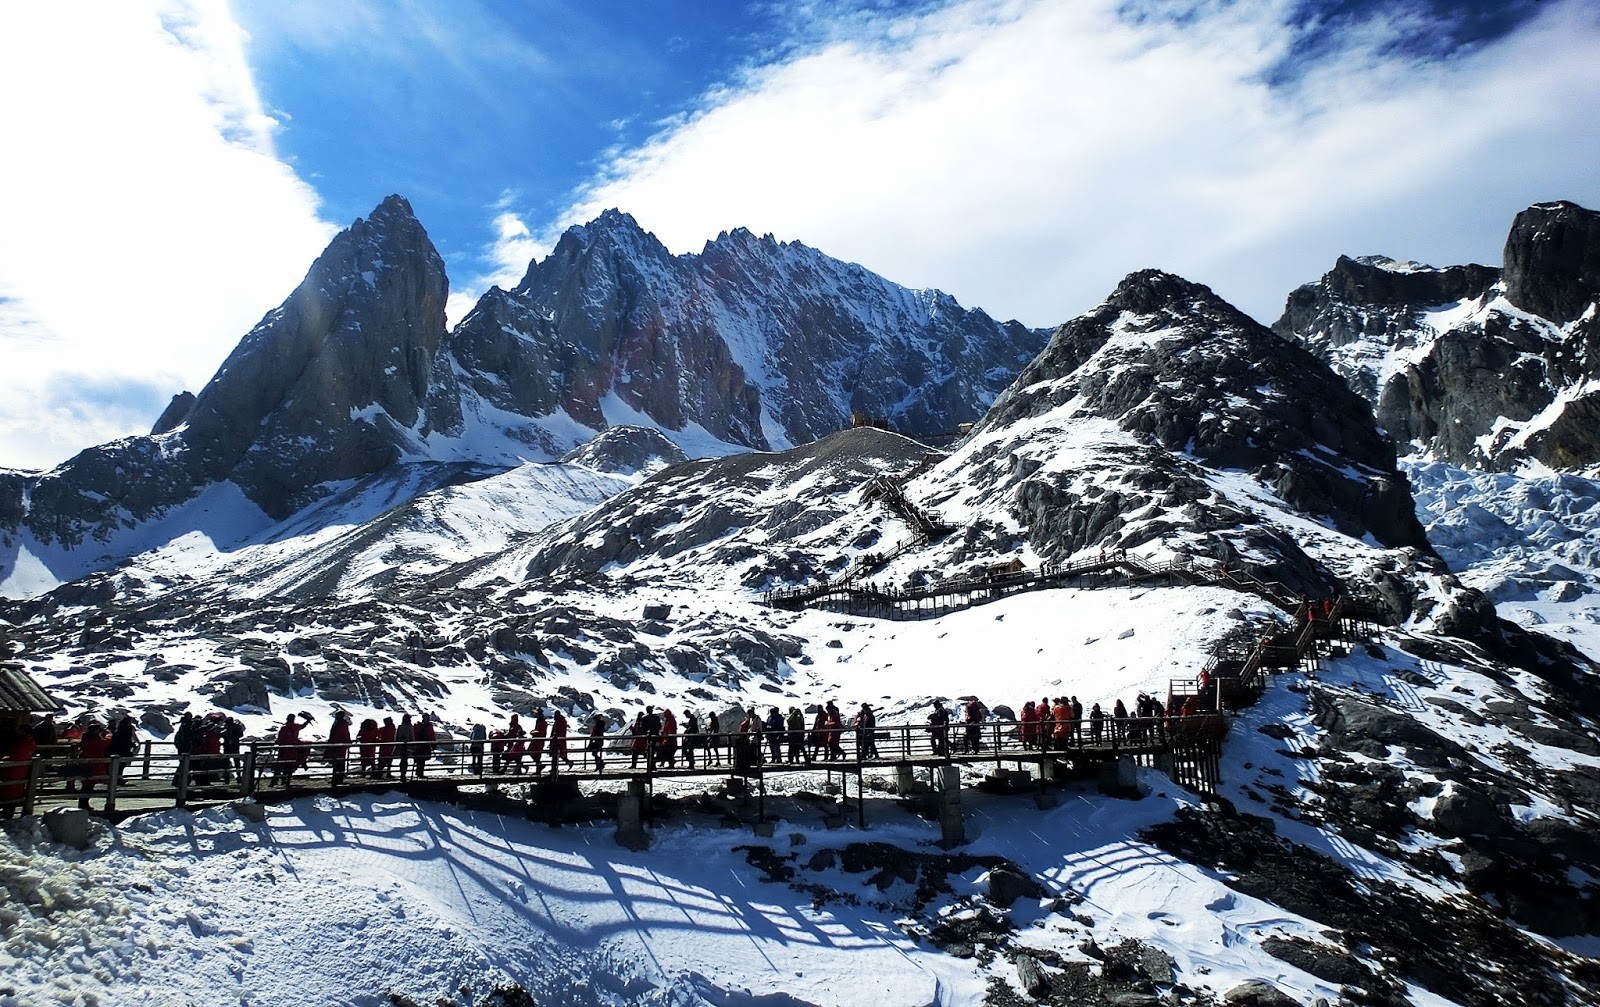 jade dragon snow mountain.jpg